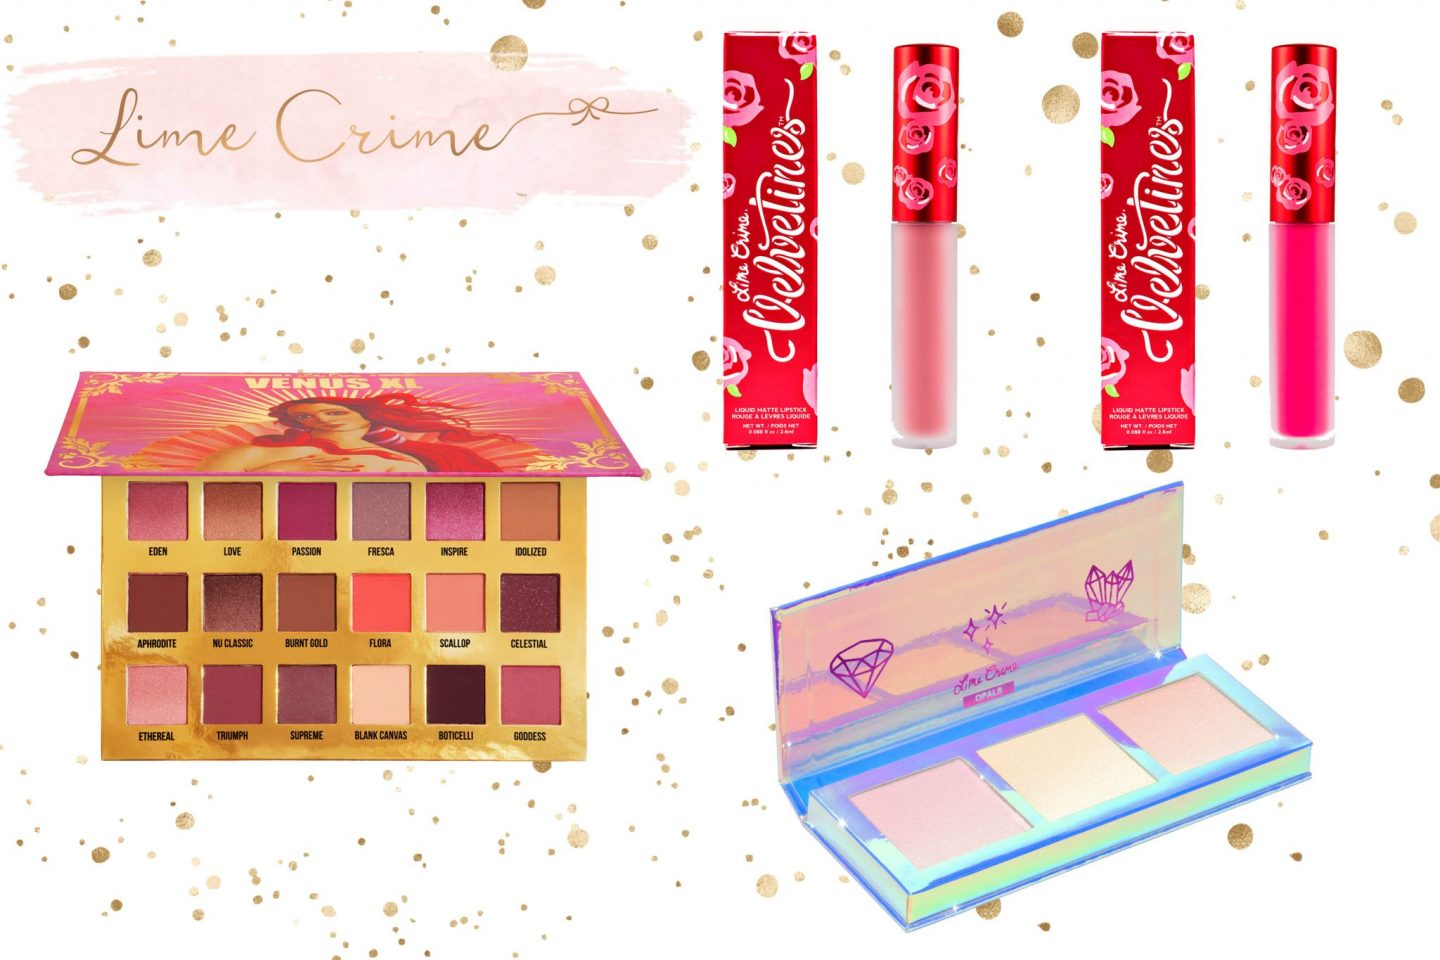 Makeup Brands I'm Dying To Try Out Now - Lime Crime